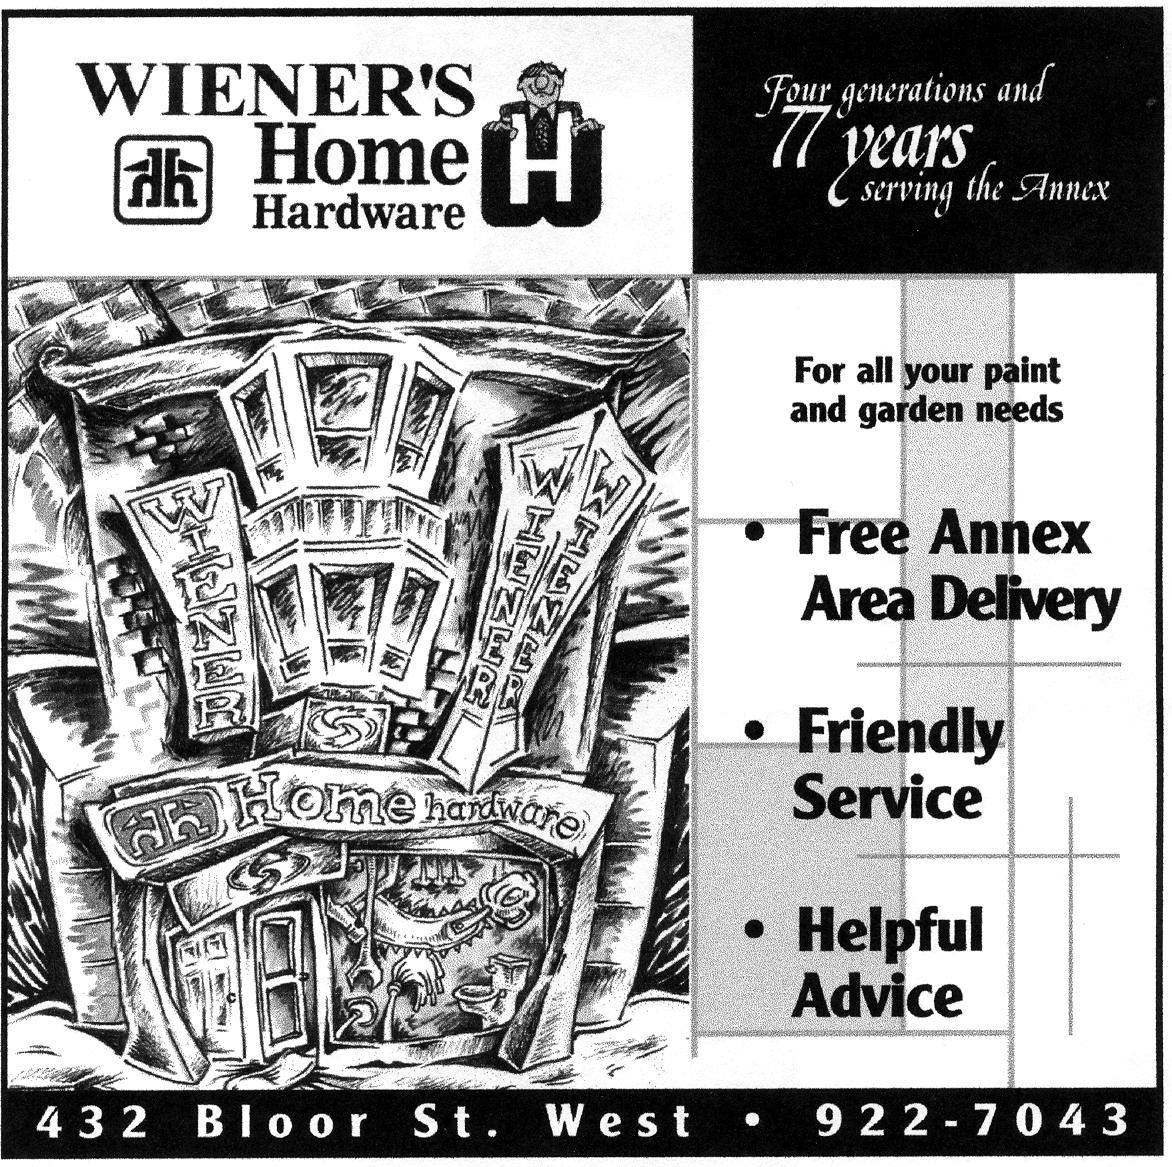 Wiener's Home Hardware